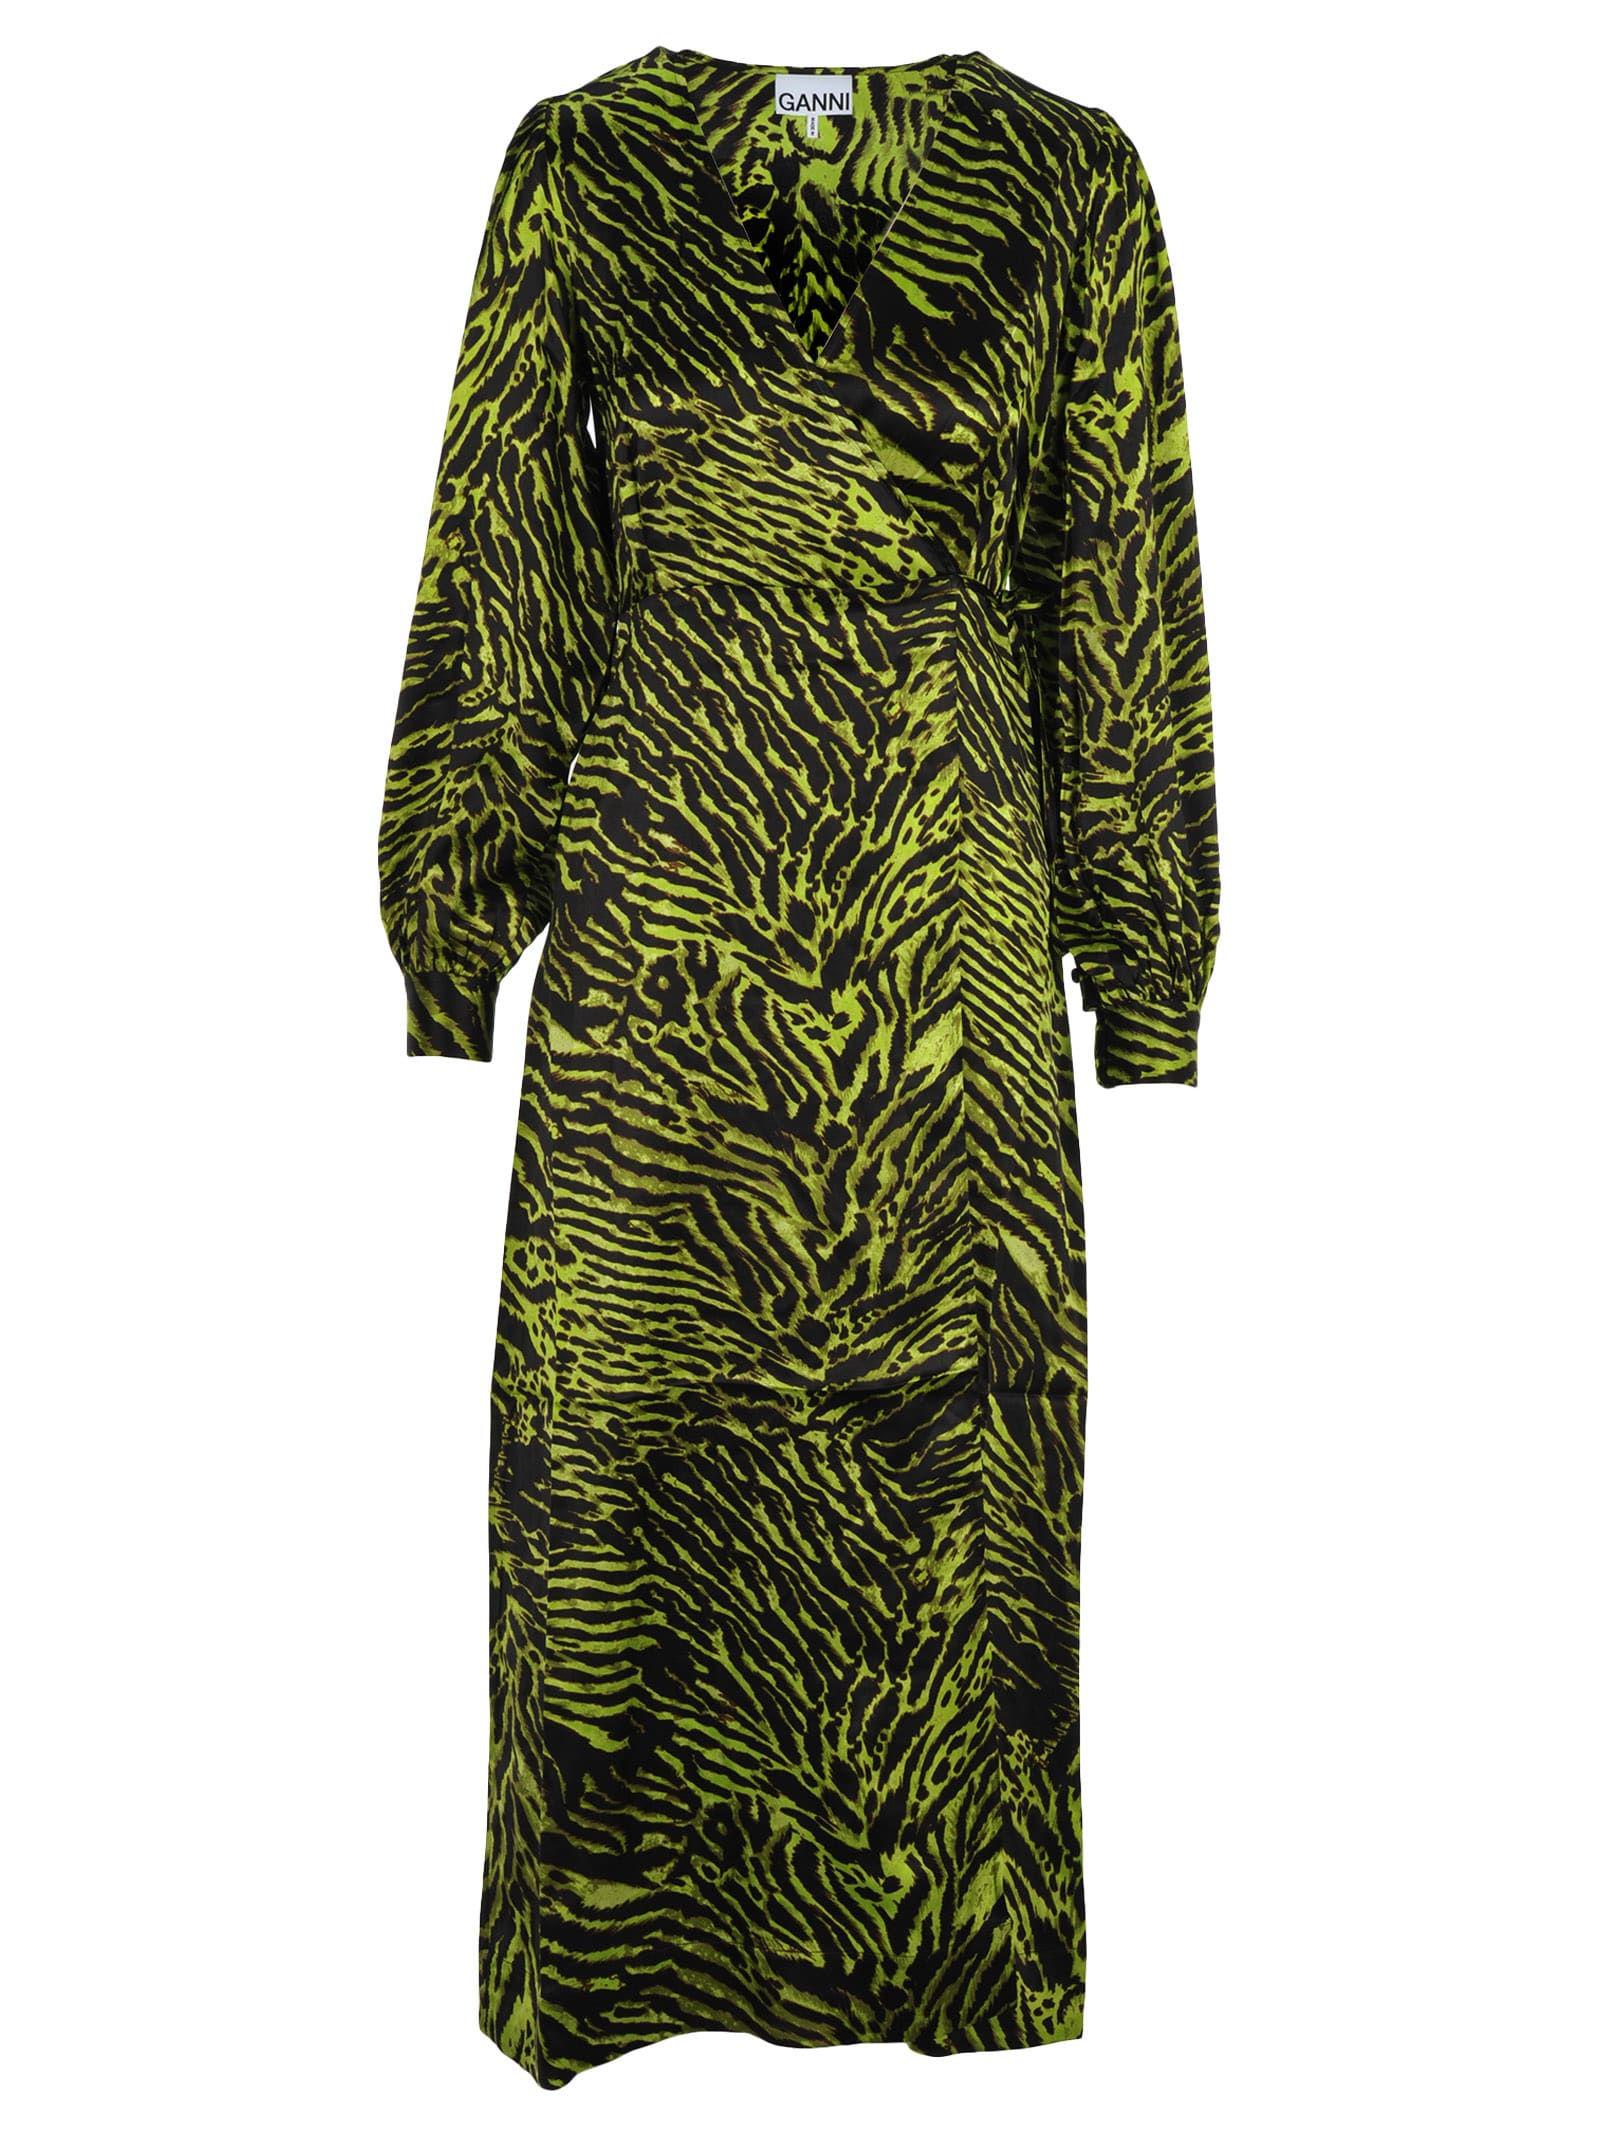 Ganni Tiger Print Dress